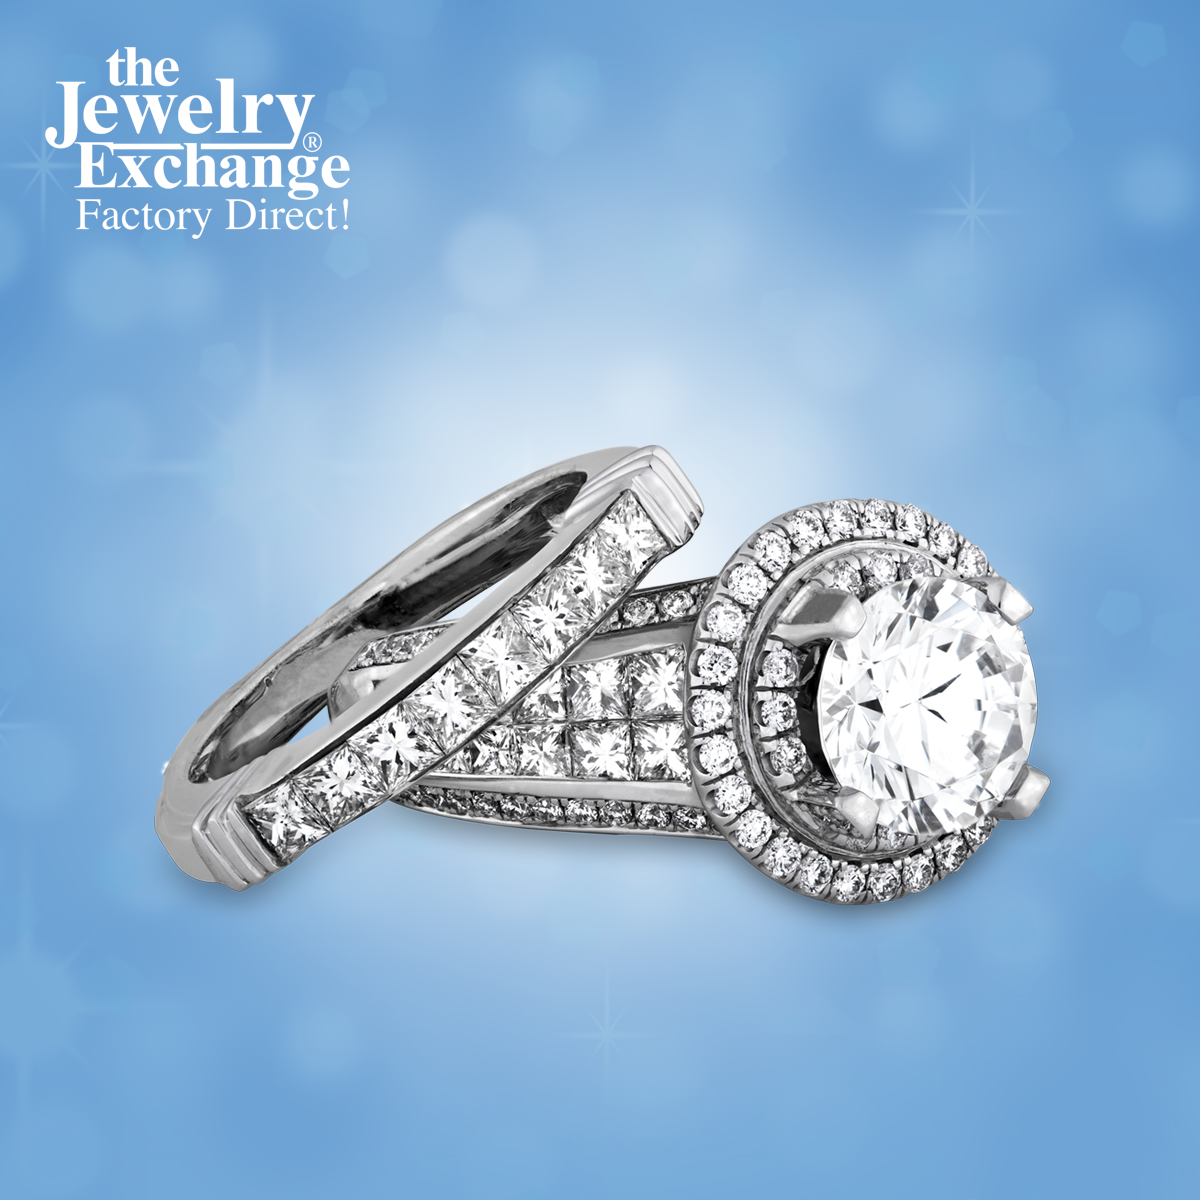 The Jewelry Exchange in New Jersey | Jewelry Store | Engagement Ring Specials image 33